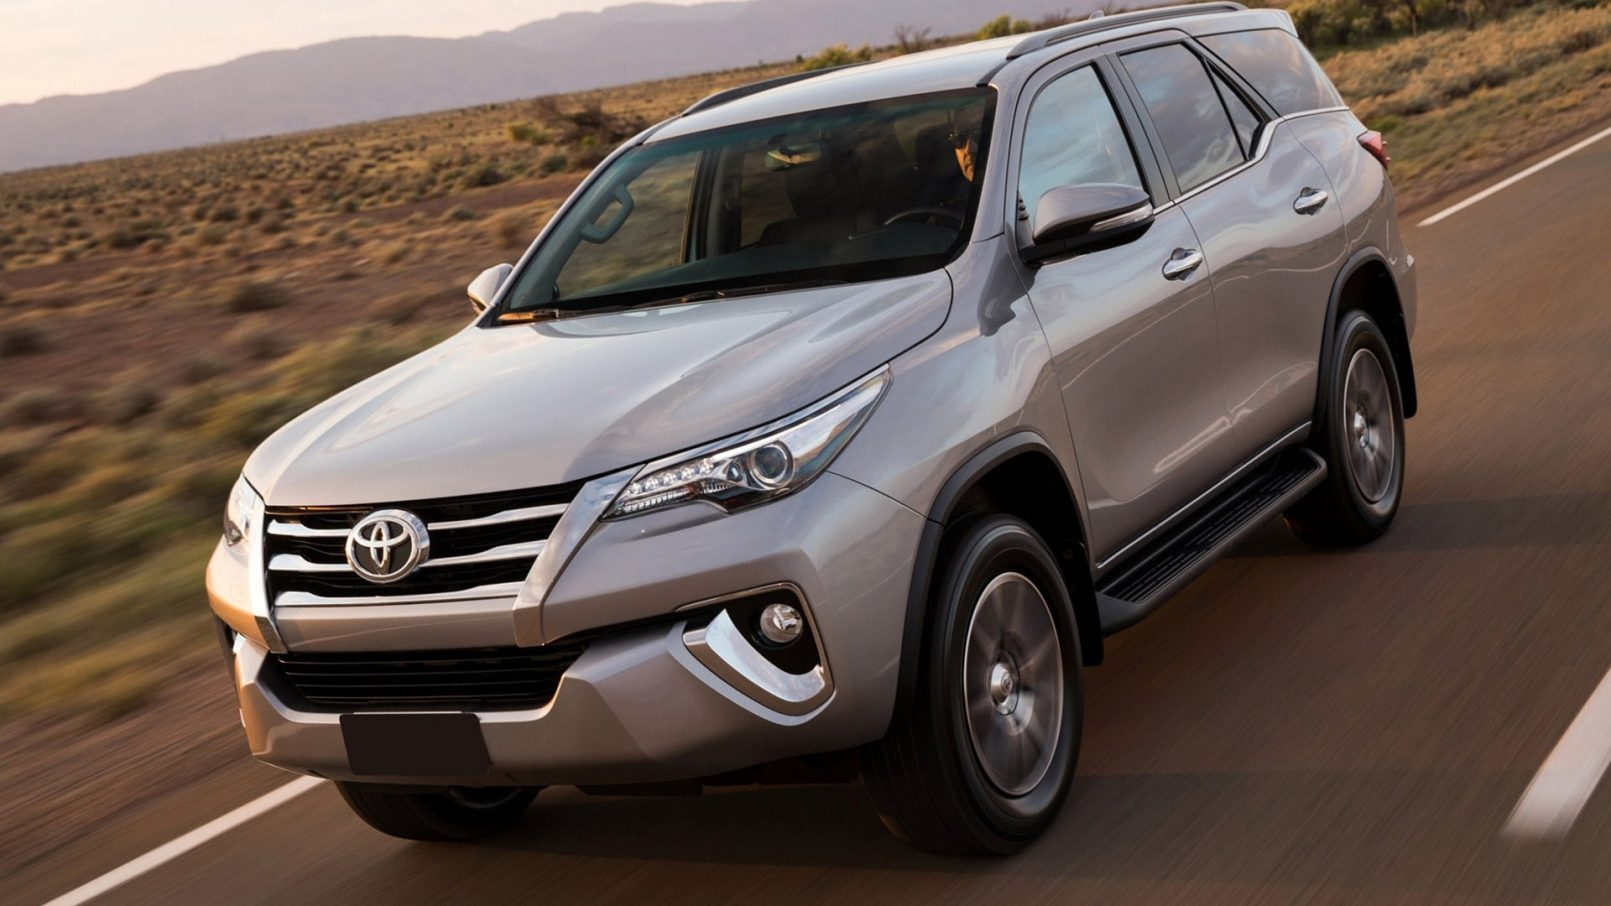 2019 Toyota Fortuner Front Hd Wallpapers - Toyota Fortuner , HD Wallpaper & Backgrounds